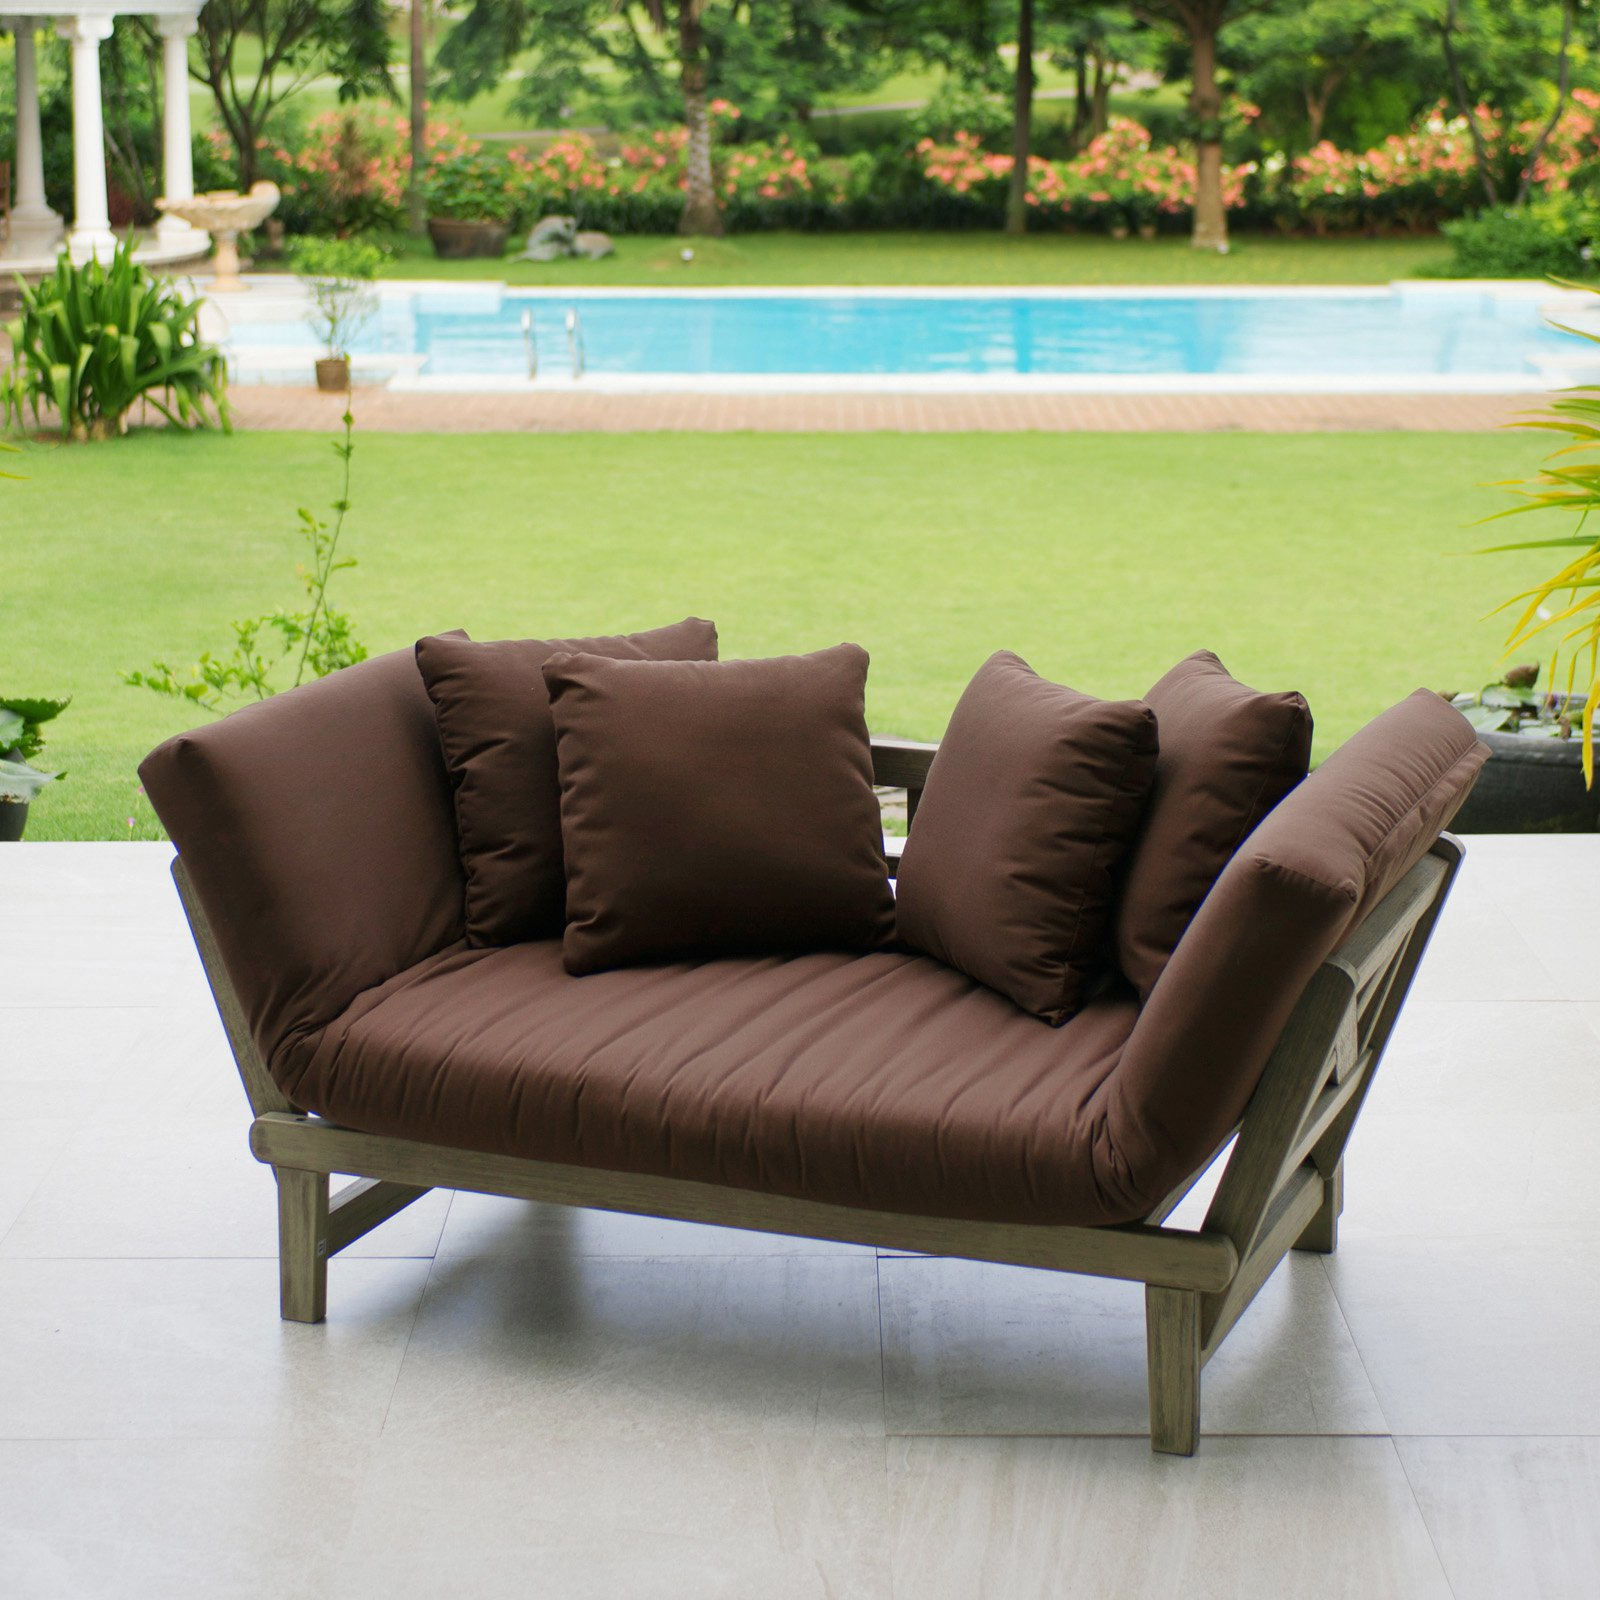 Cambridge Casual West Lake Patio Convertible Sofa Bed With Cushion